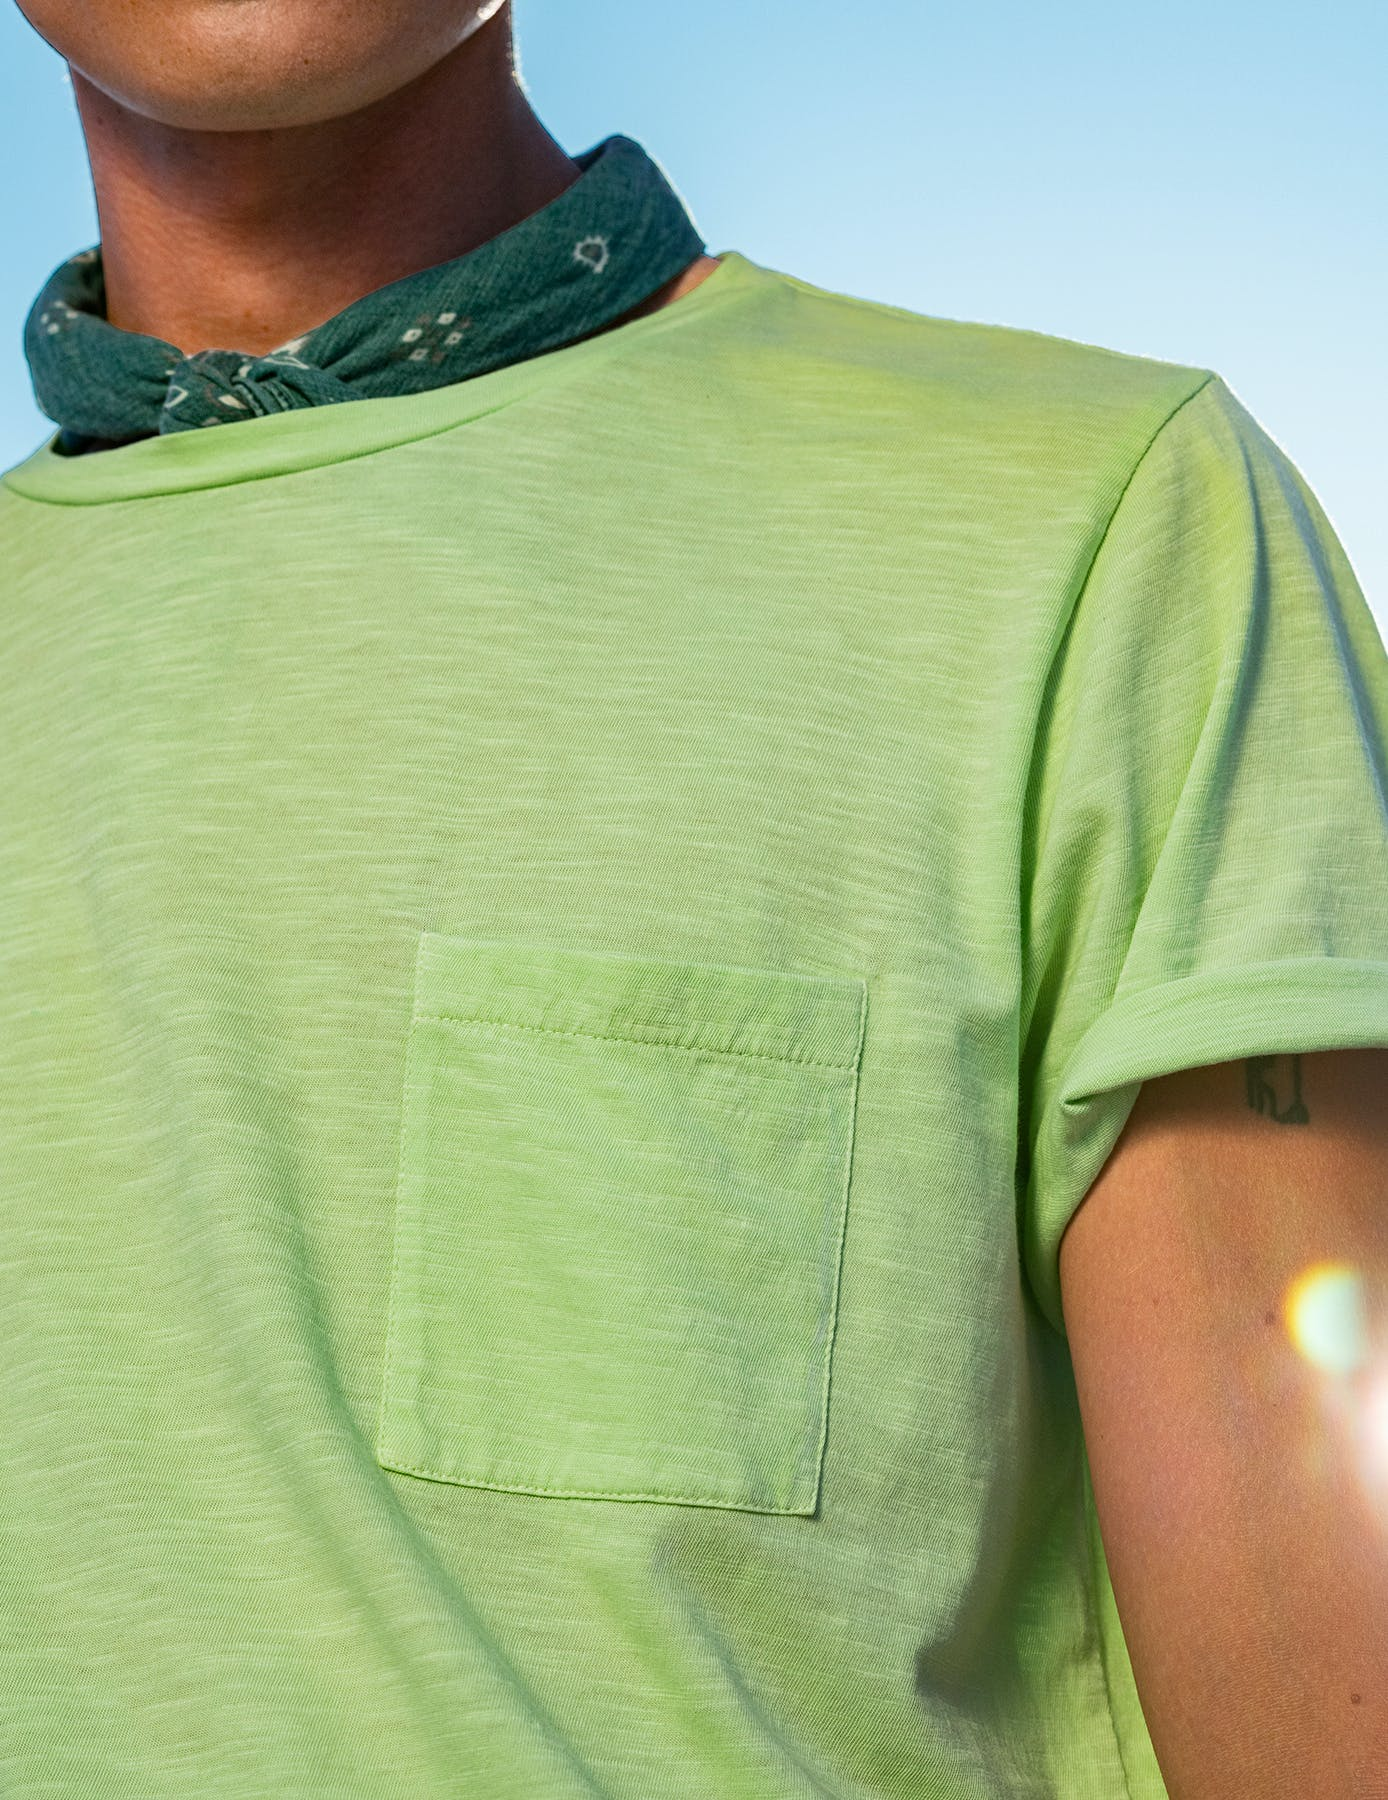 Man wearing green tee shirt and green bandana